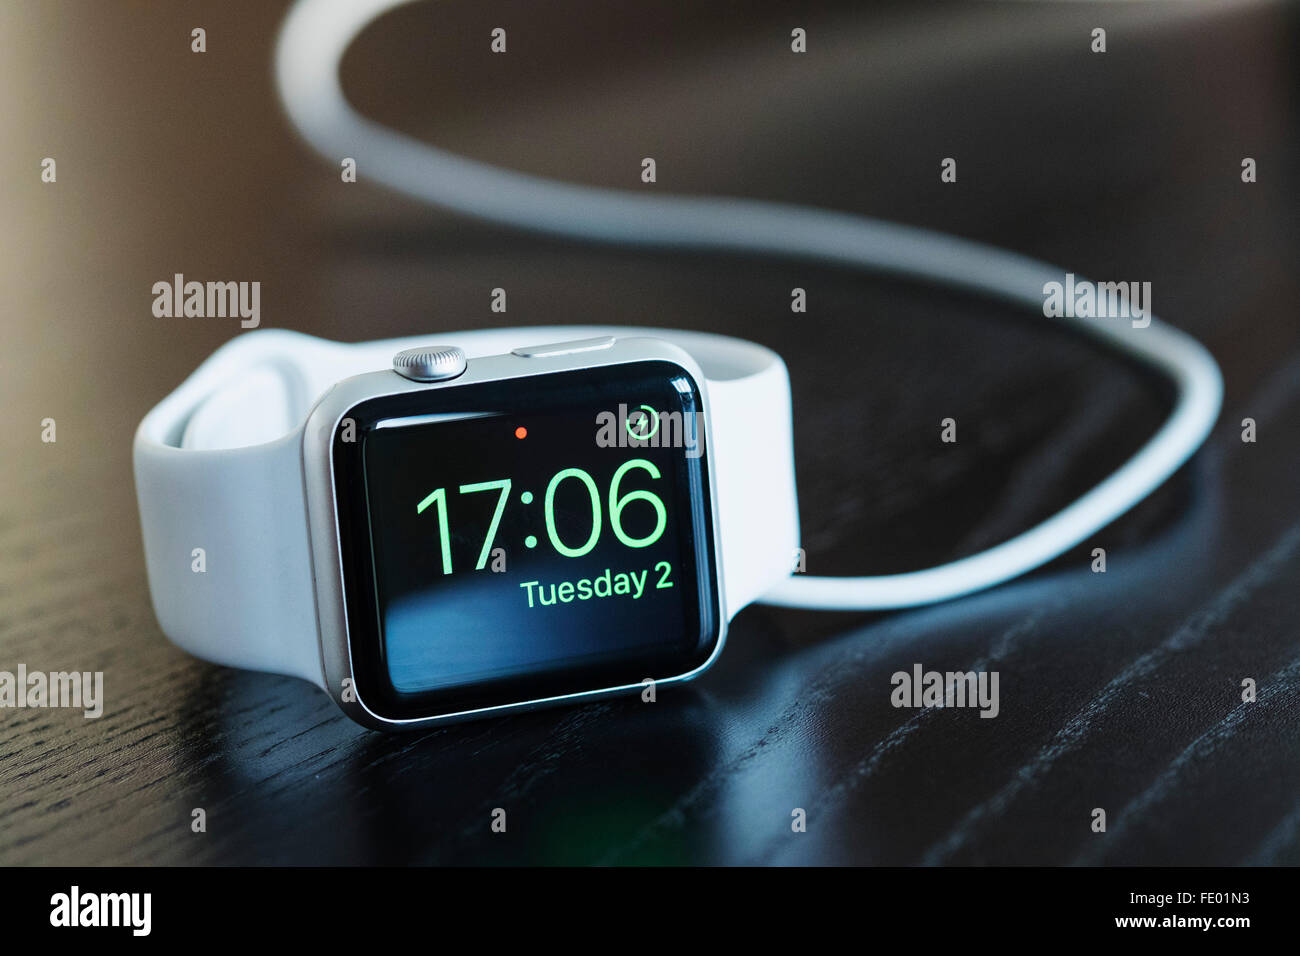 Apple watch with white strap charging and showing current time. - Stock Image